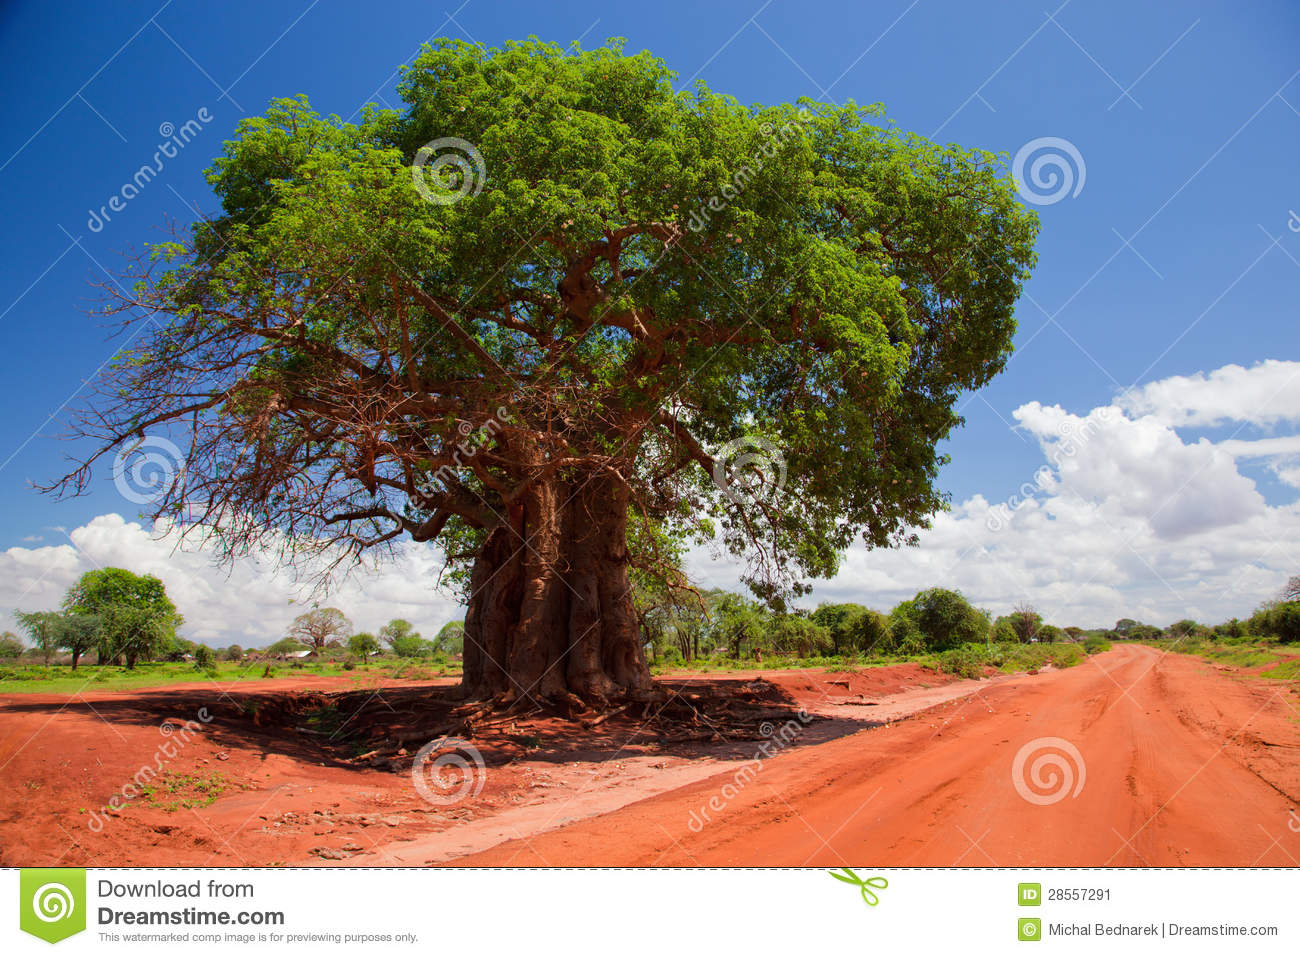 Kenya Road Sign >> Baobab Tree On Red Soil Road, Kenya, Africa Stock Image - Image: 28557291